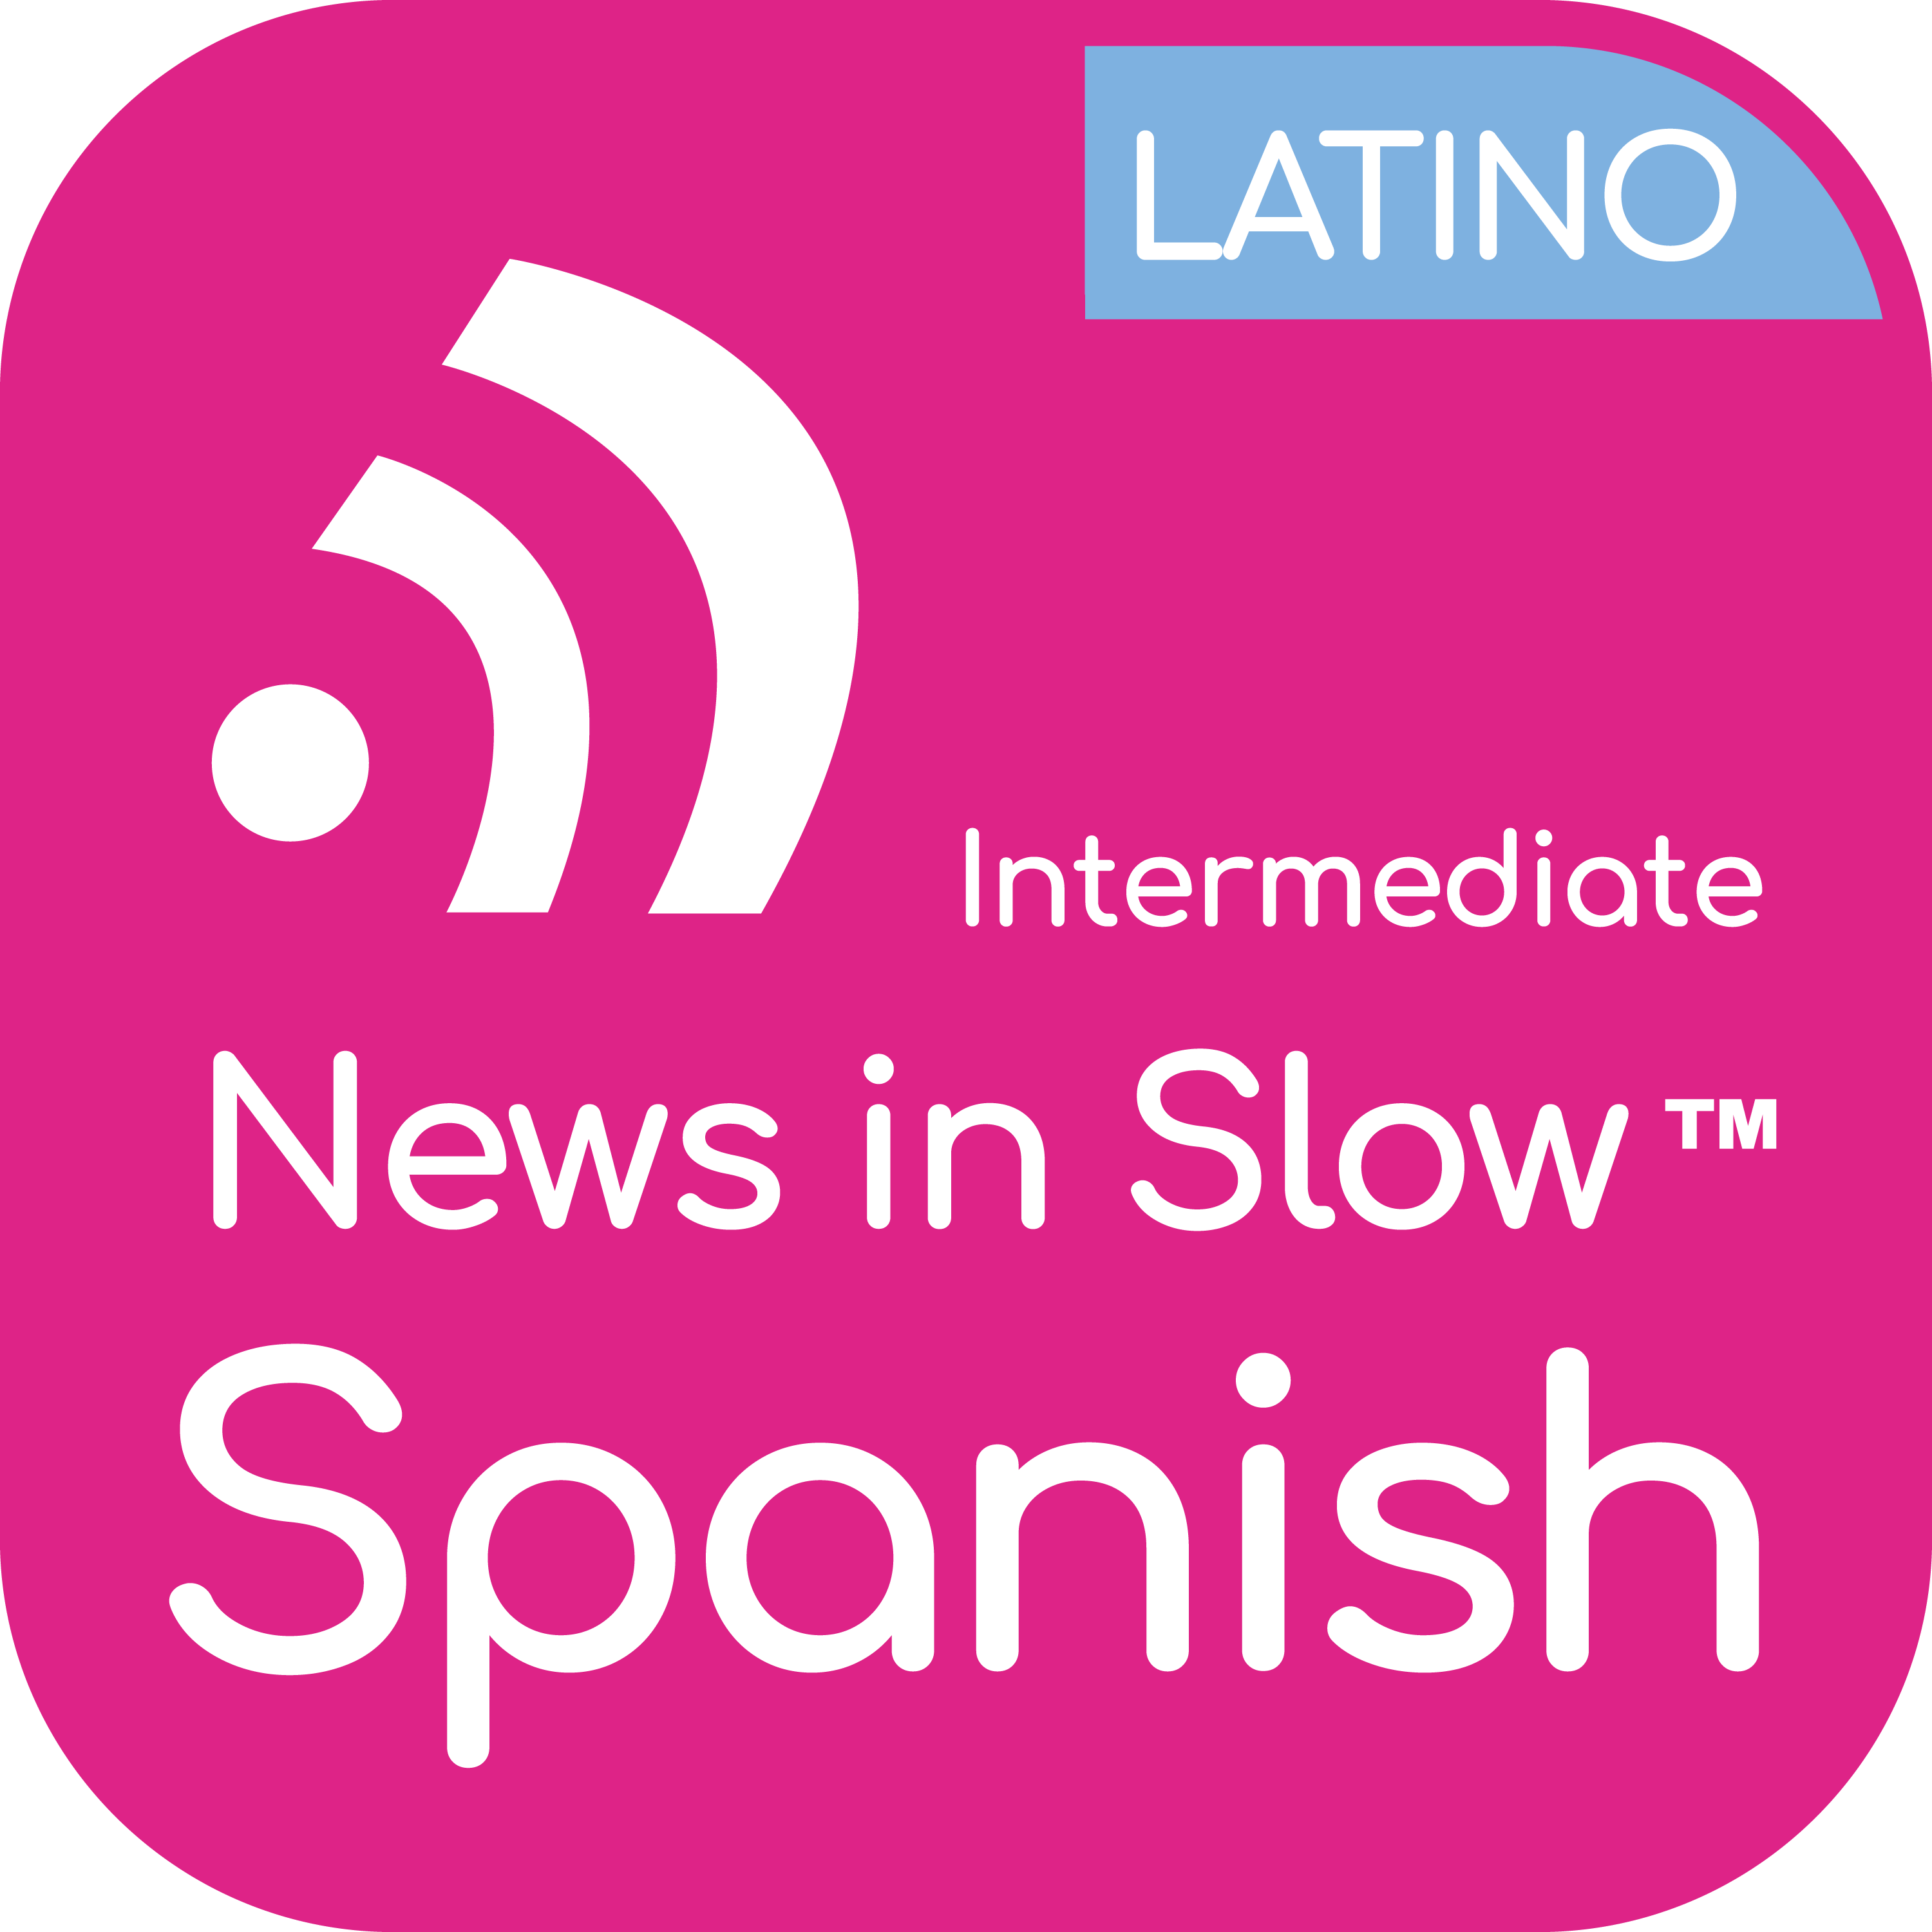 News in Slow Spanish Latino - # 133 - Spanish grammar, news and expressions